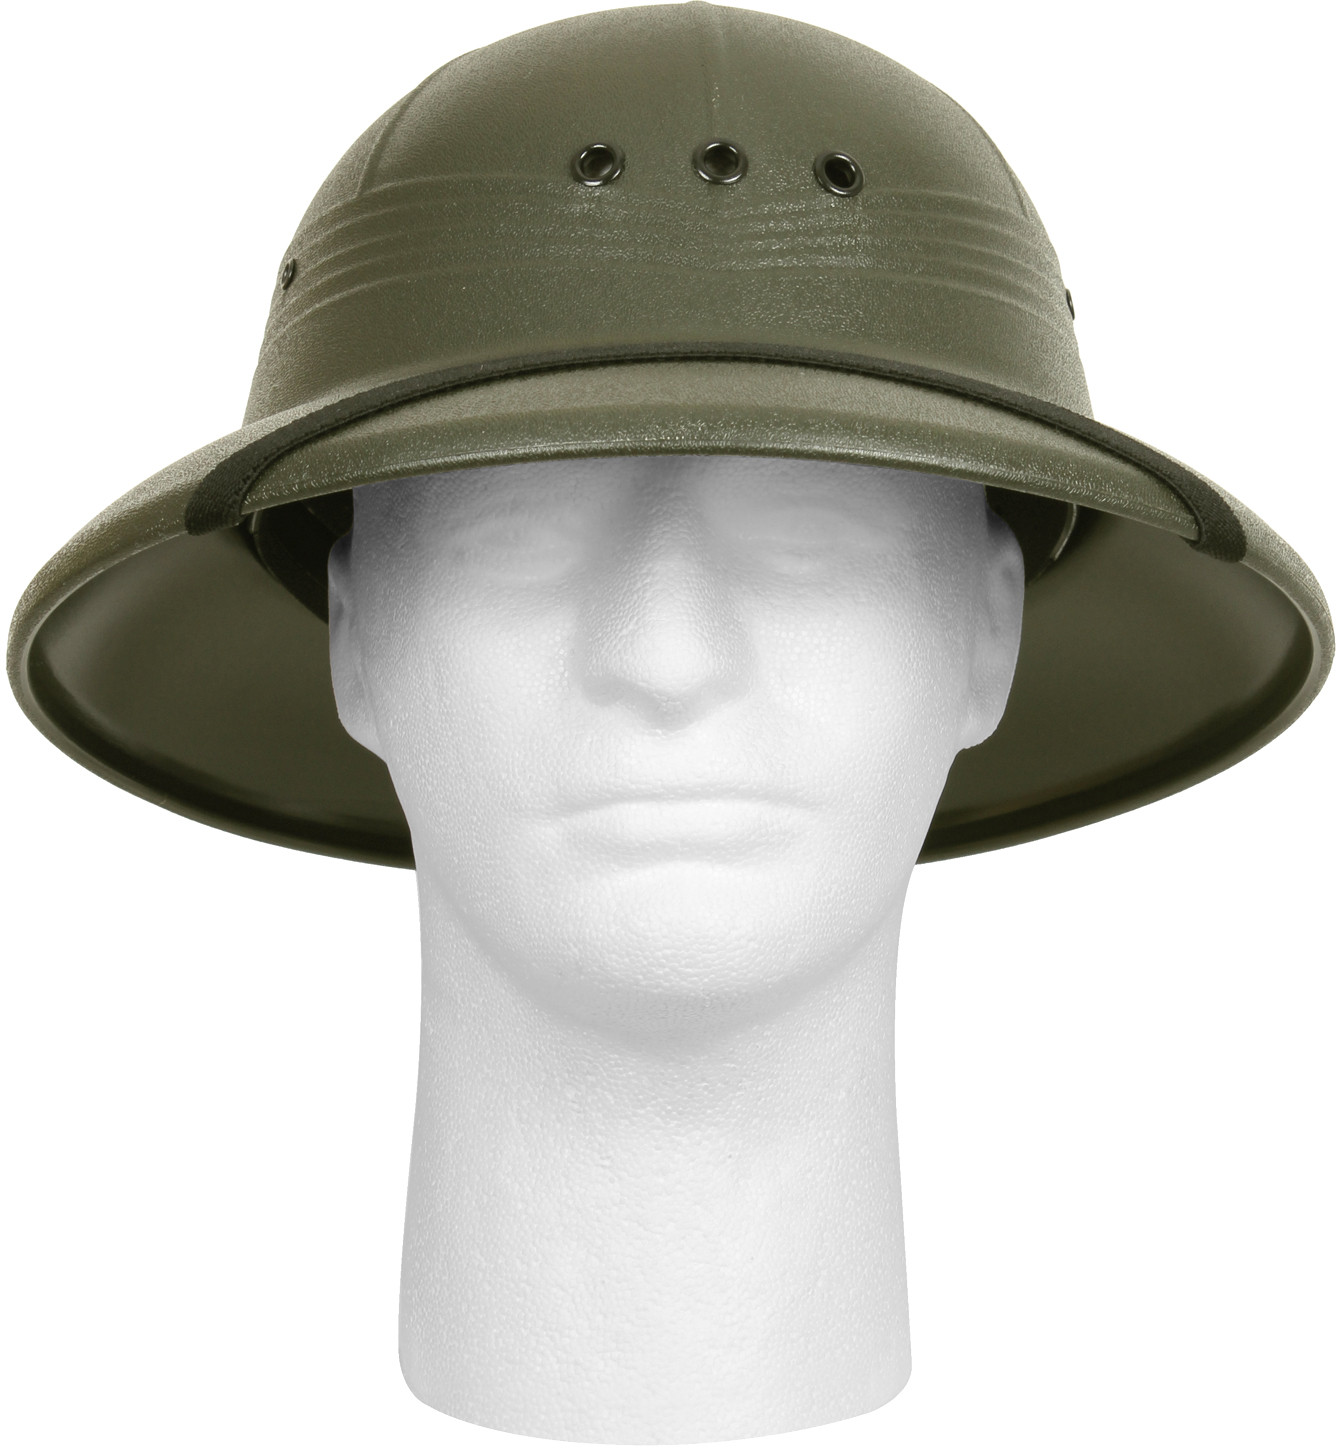 a5fc0a427eb4a More Views. Olive Drab Vietnam Style Light-Weight Safari Pith Helmet ...